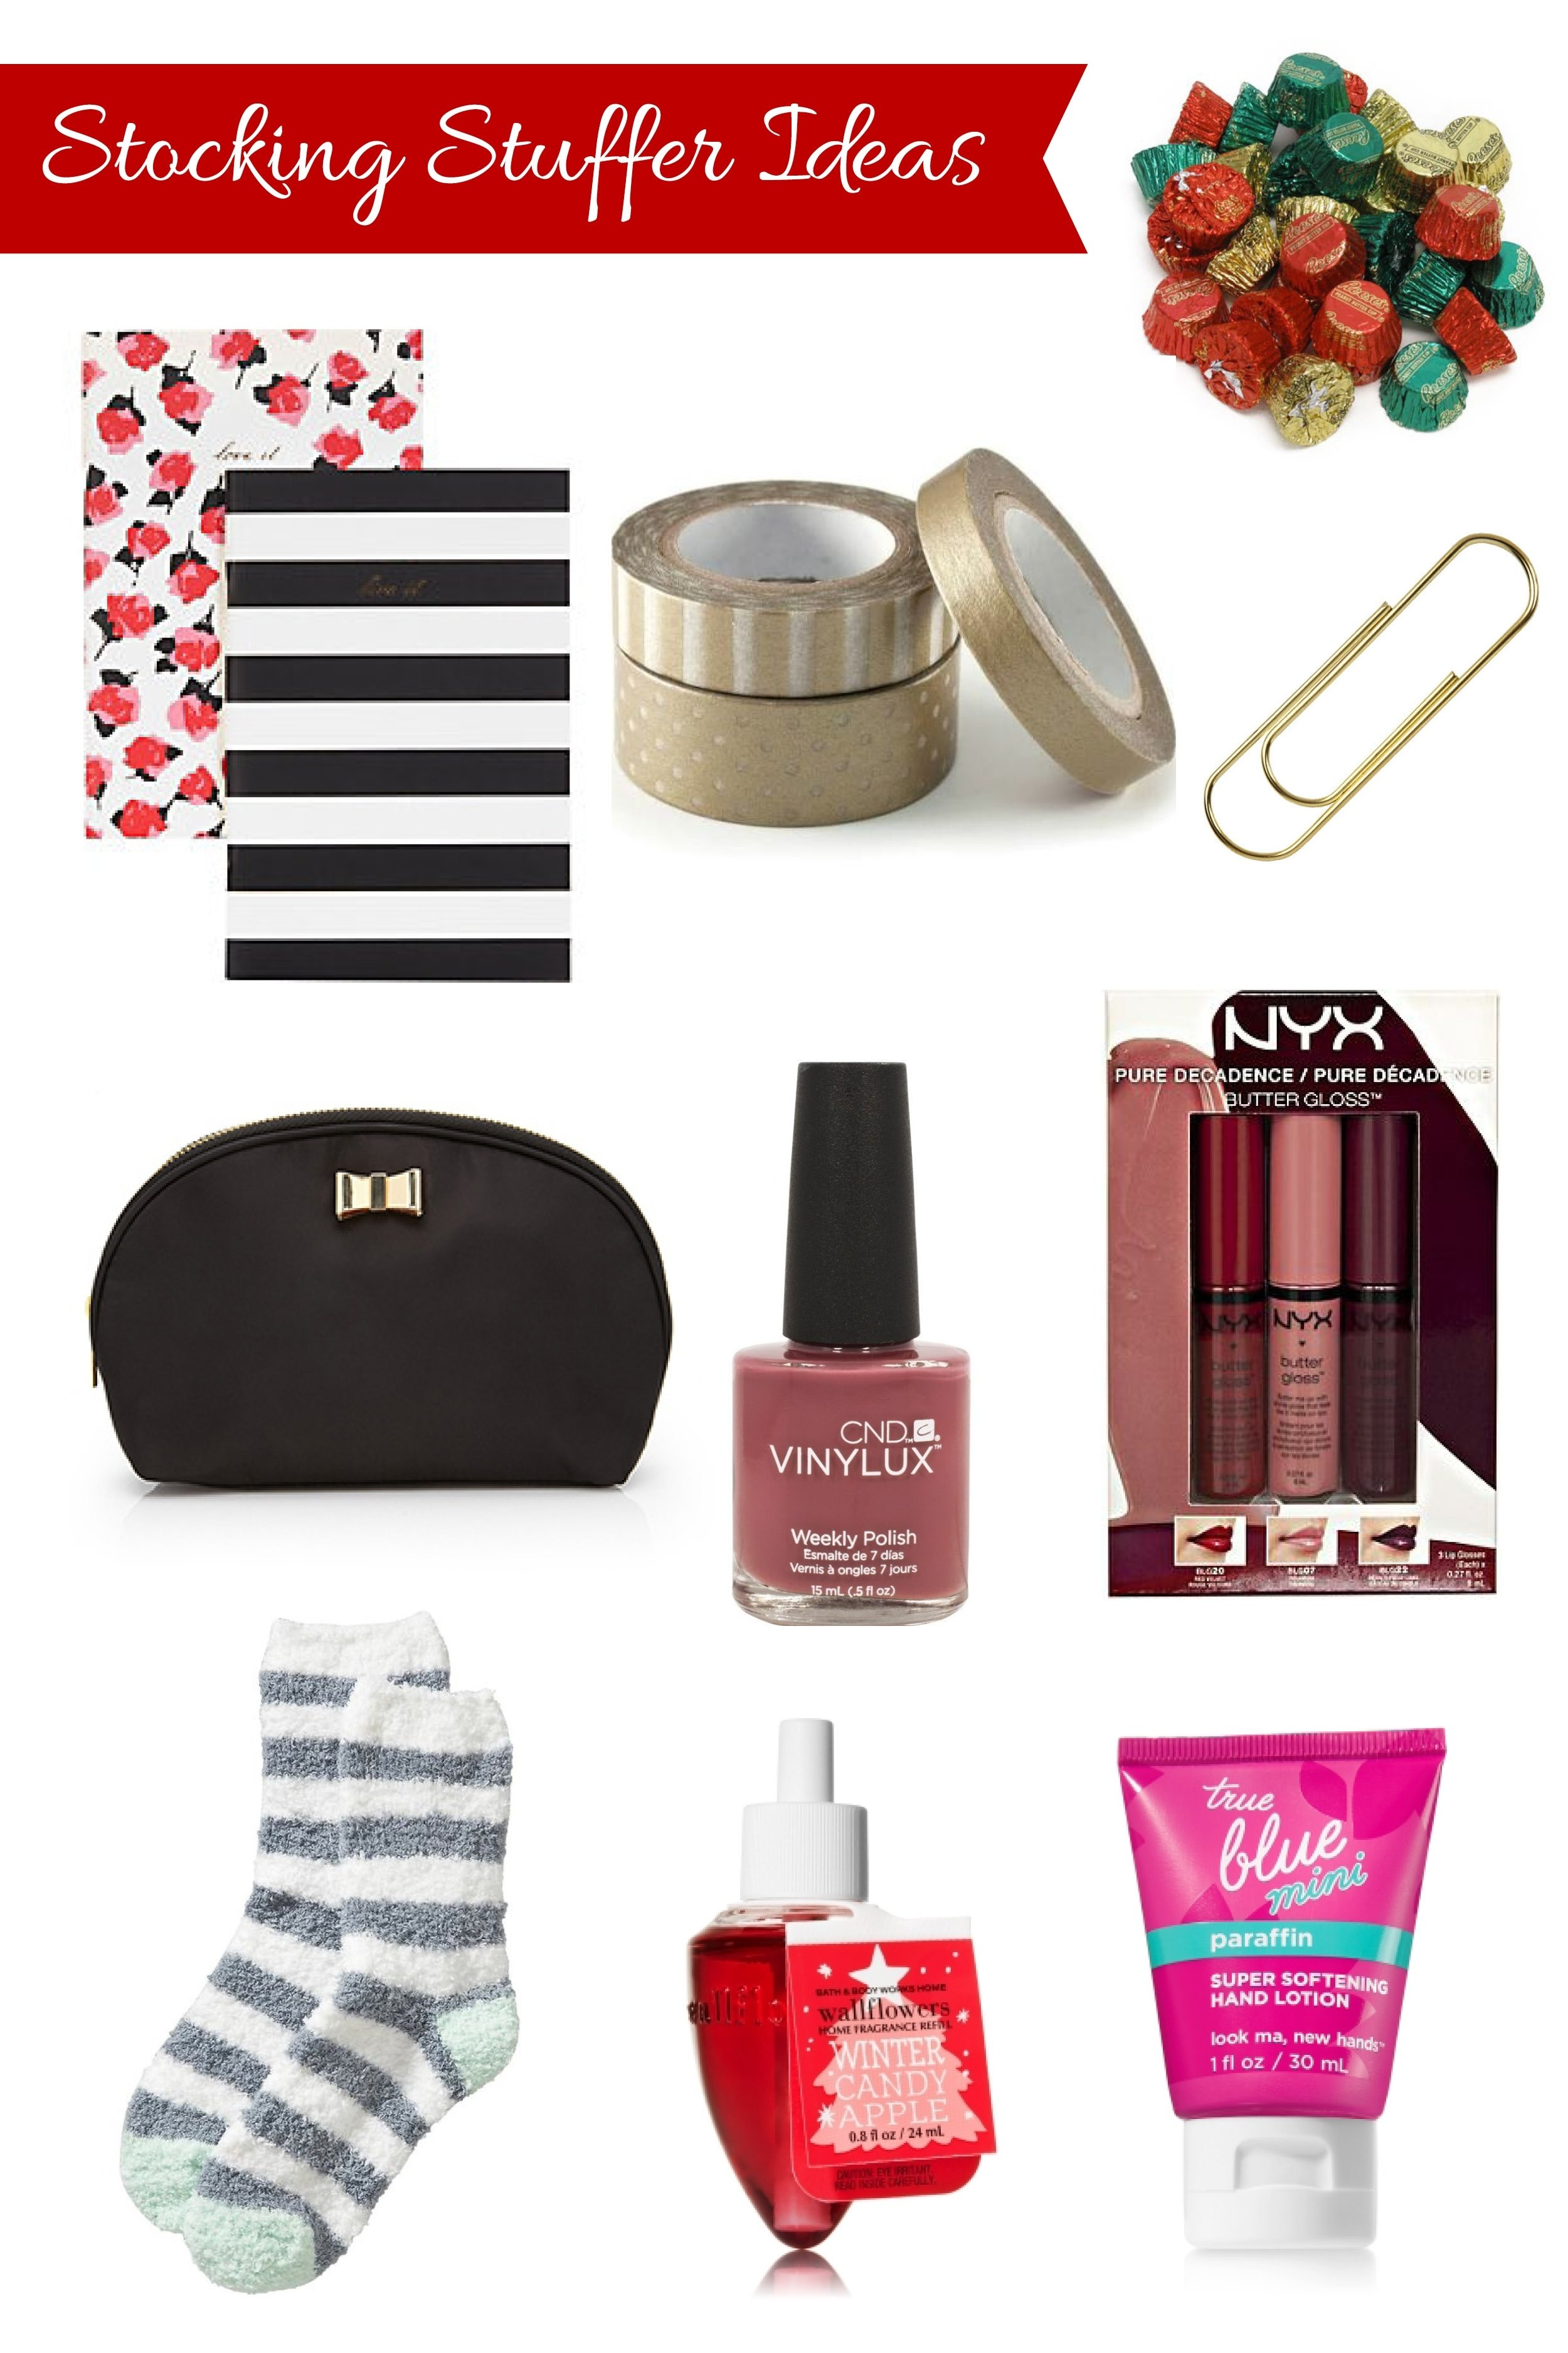 10 Amazing Stocking Stuffer Ideas For Wife stocking stuffer ideas under 10 perpetually daydreaming 2